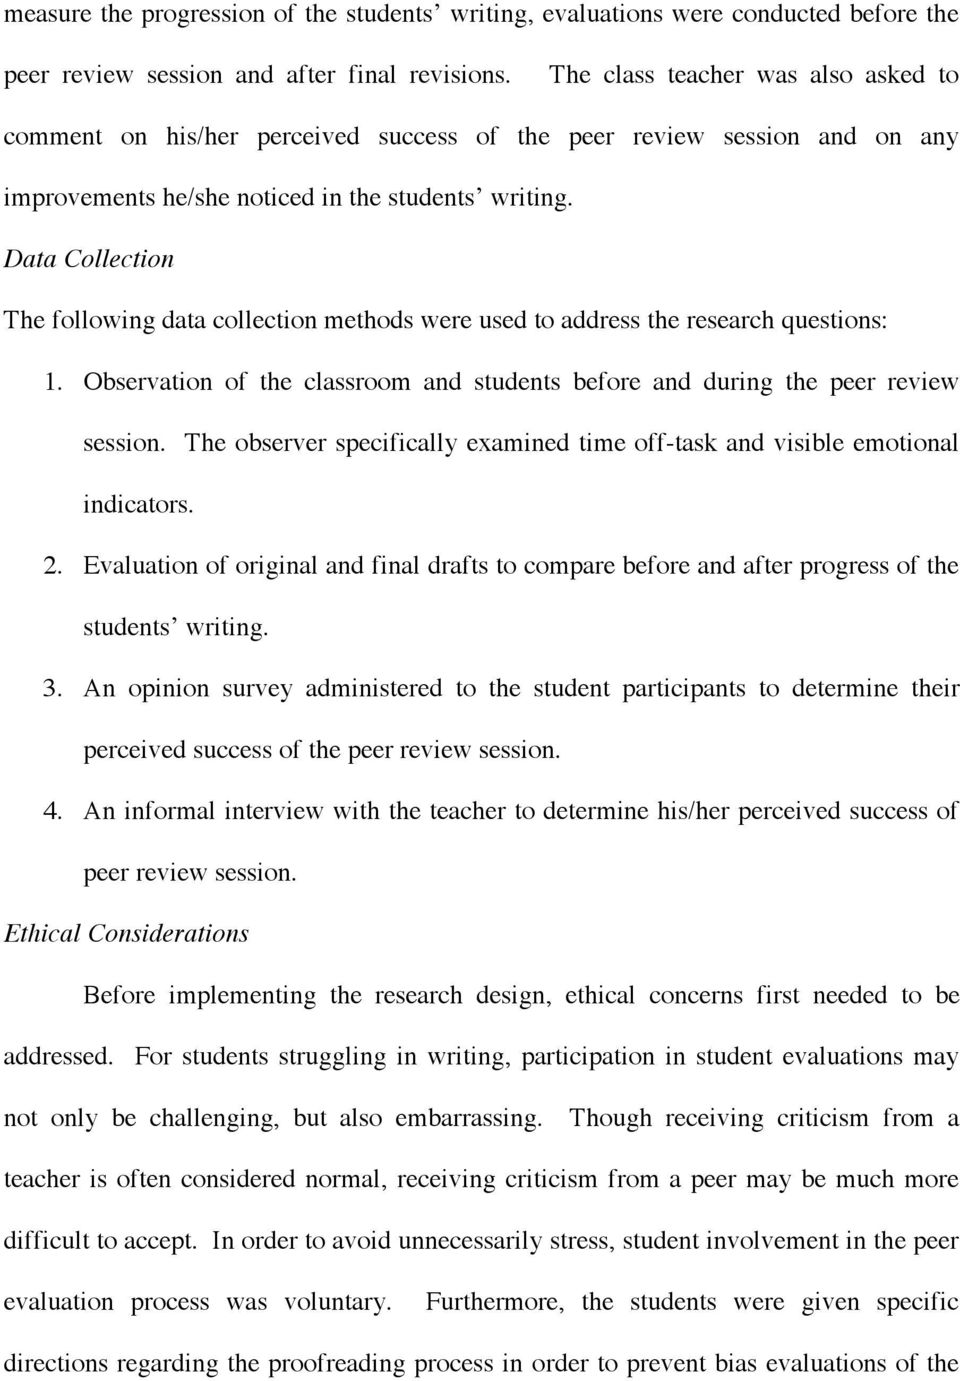 Data Collection The following data collection methods were used to address the research questions: 1. Observation of the classroom and students before and during the peer review session.